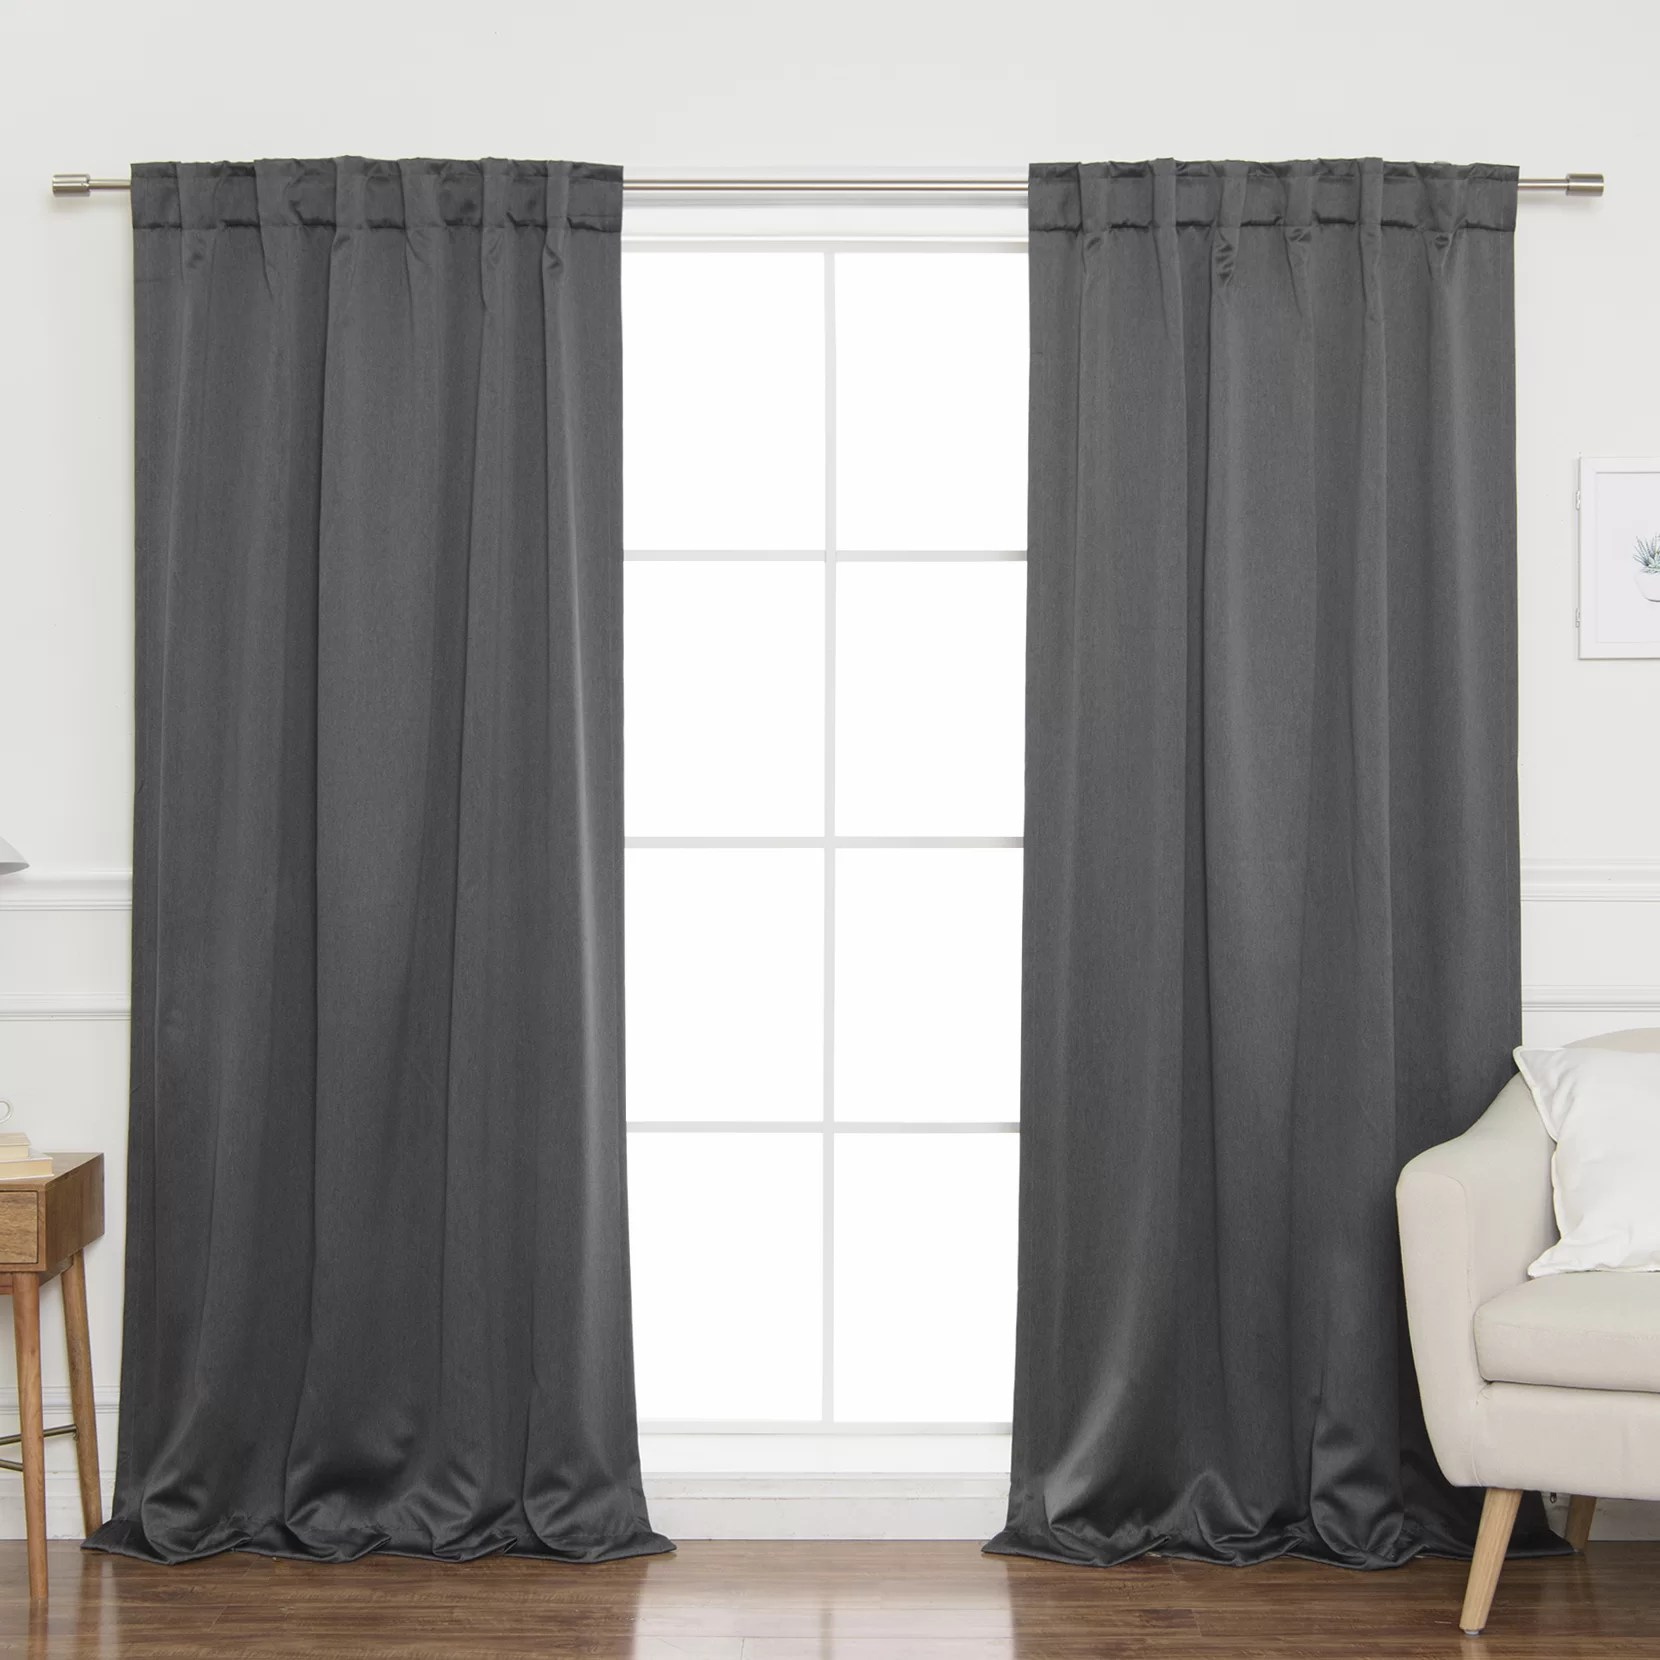 Tab Top Curtains Amazon Www Back Tab Top Curtains Ideas 2019